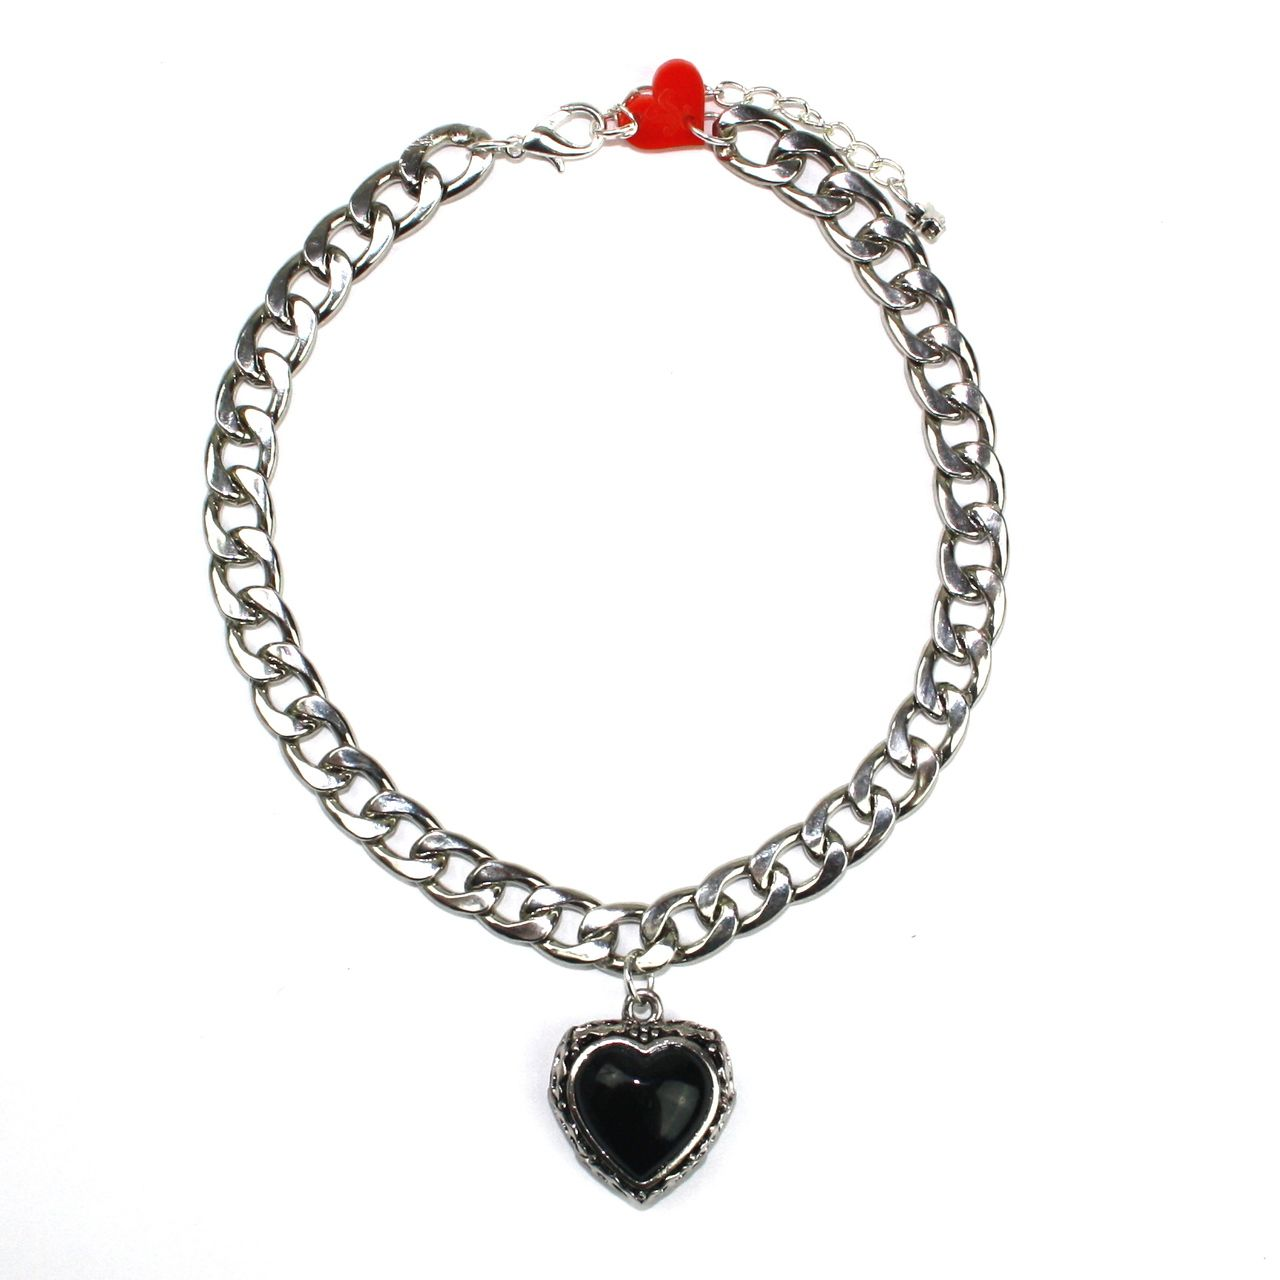 Black Heart Choker - Sour Cherry | Quirky & Kitsch Jewellery & Accessories